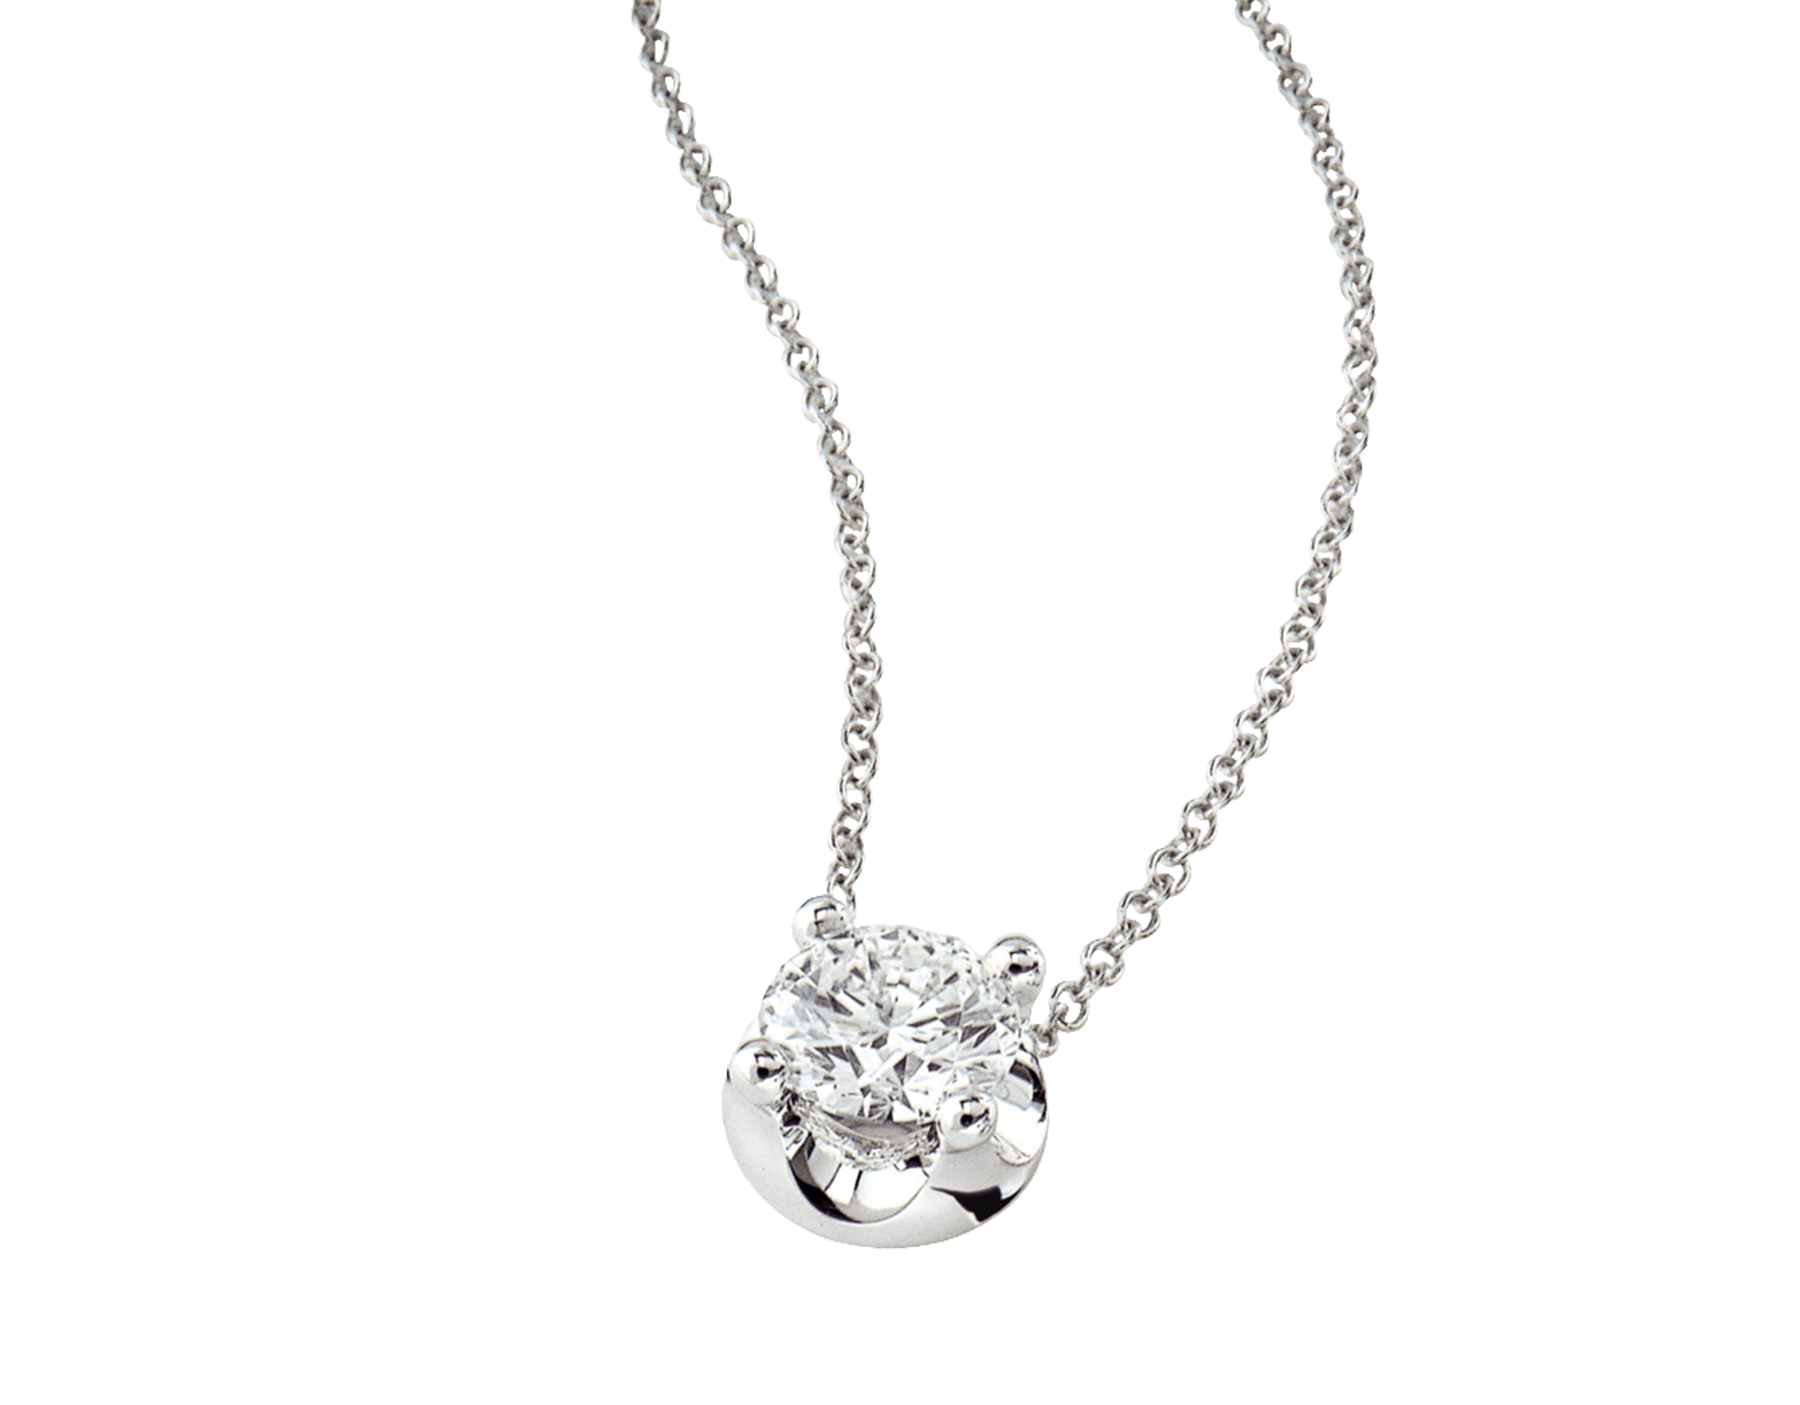 Corona necklace with 18 kt white gold chain and 18 kt white gold pendant set with a round brilliant cut diamond CL-CORONA image 4